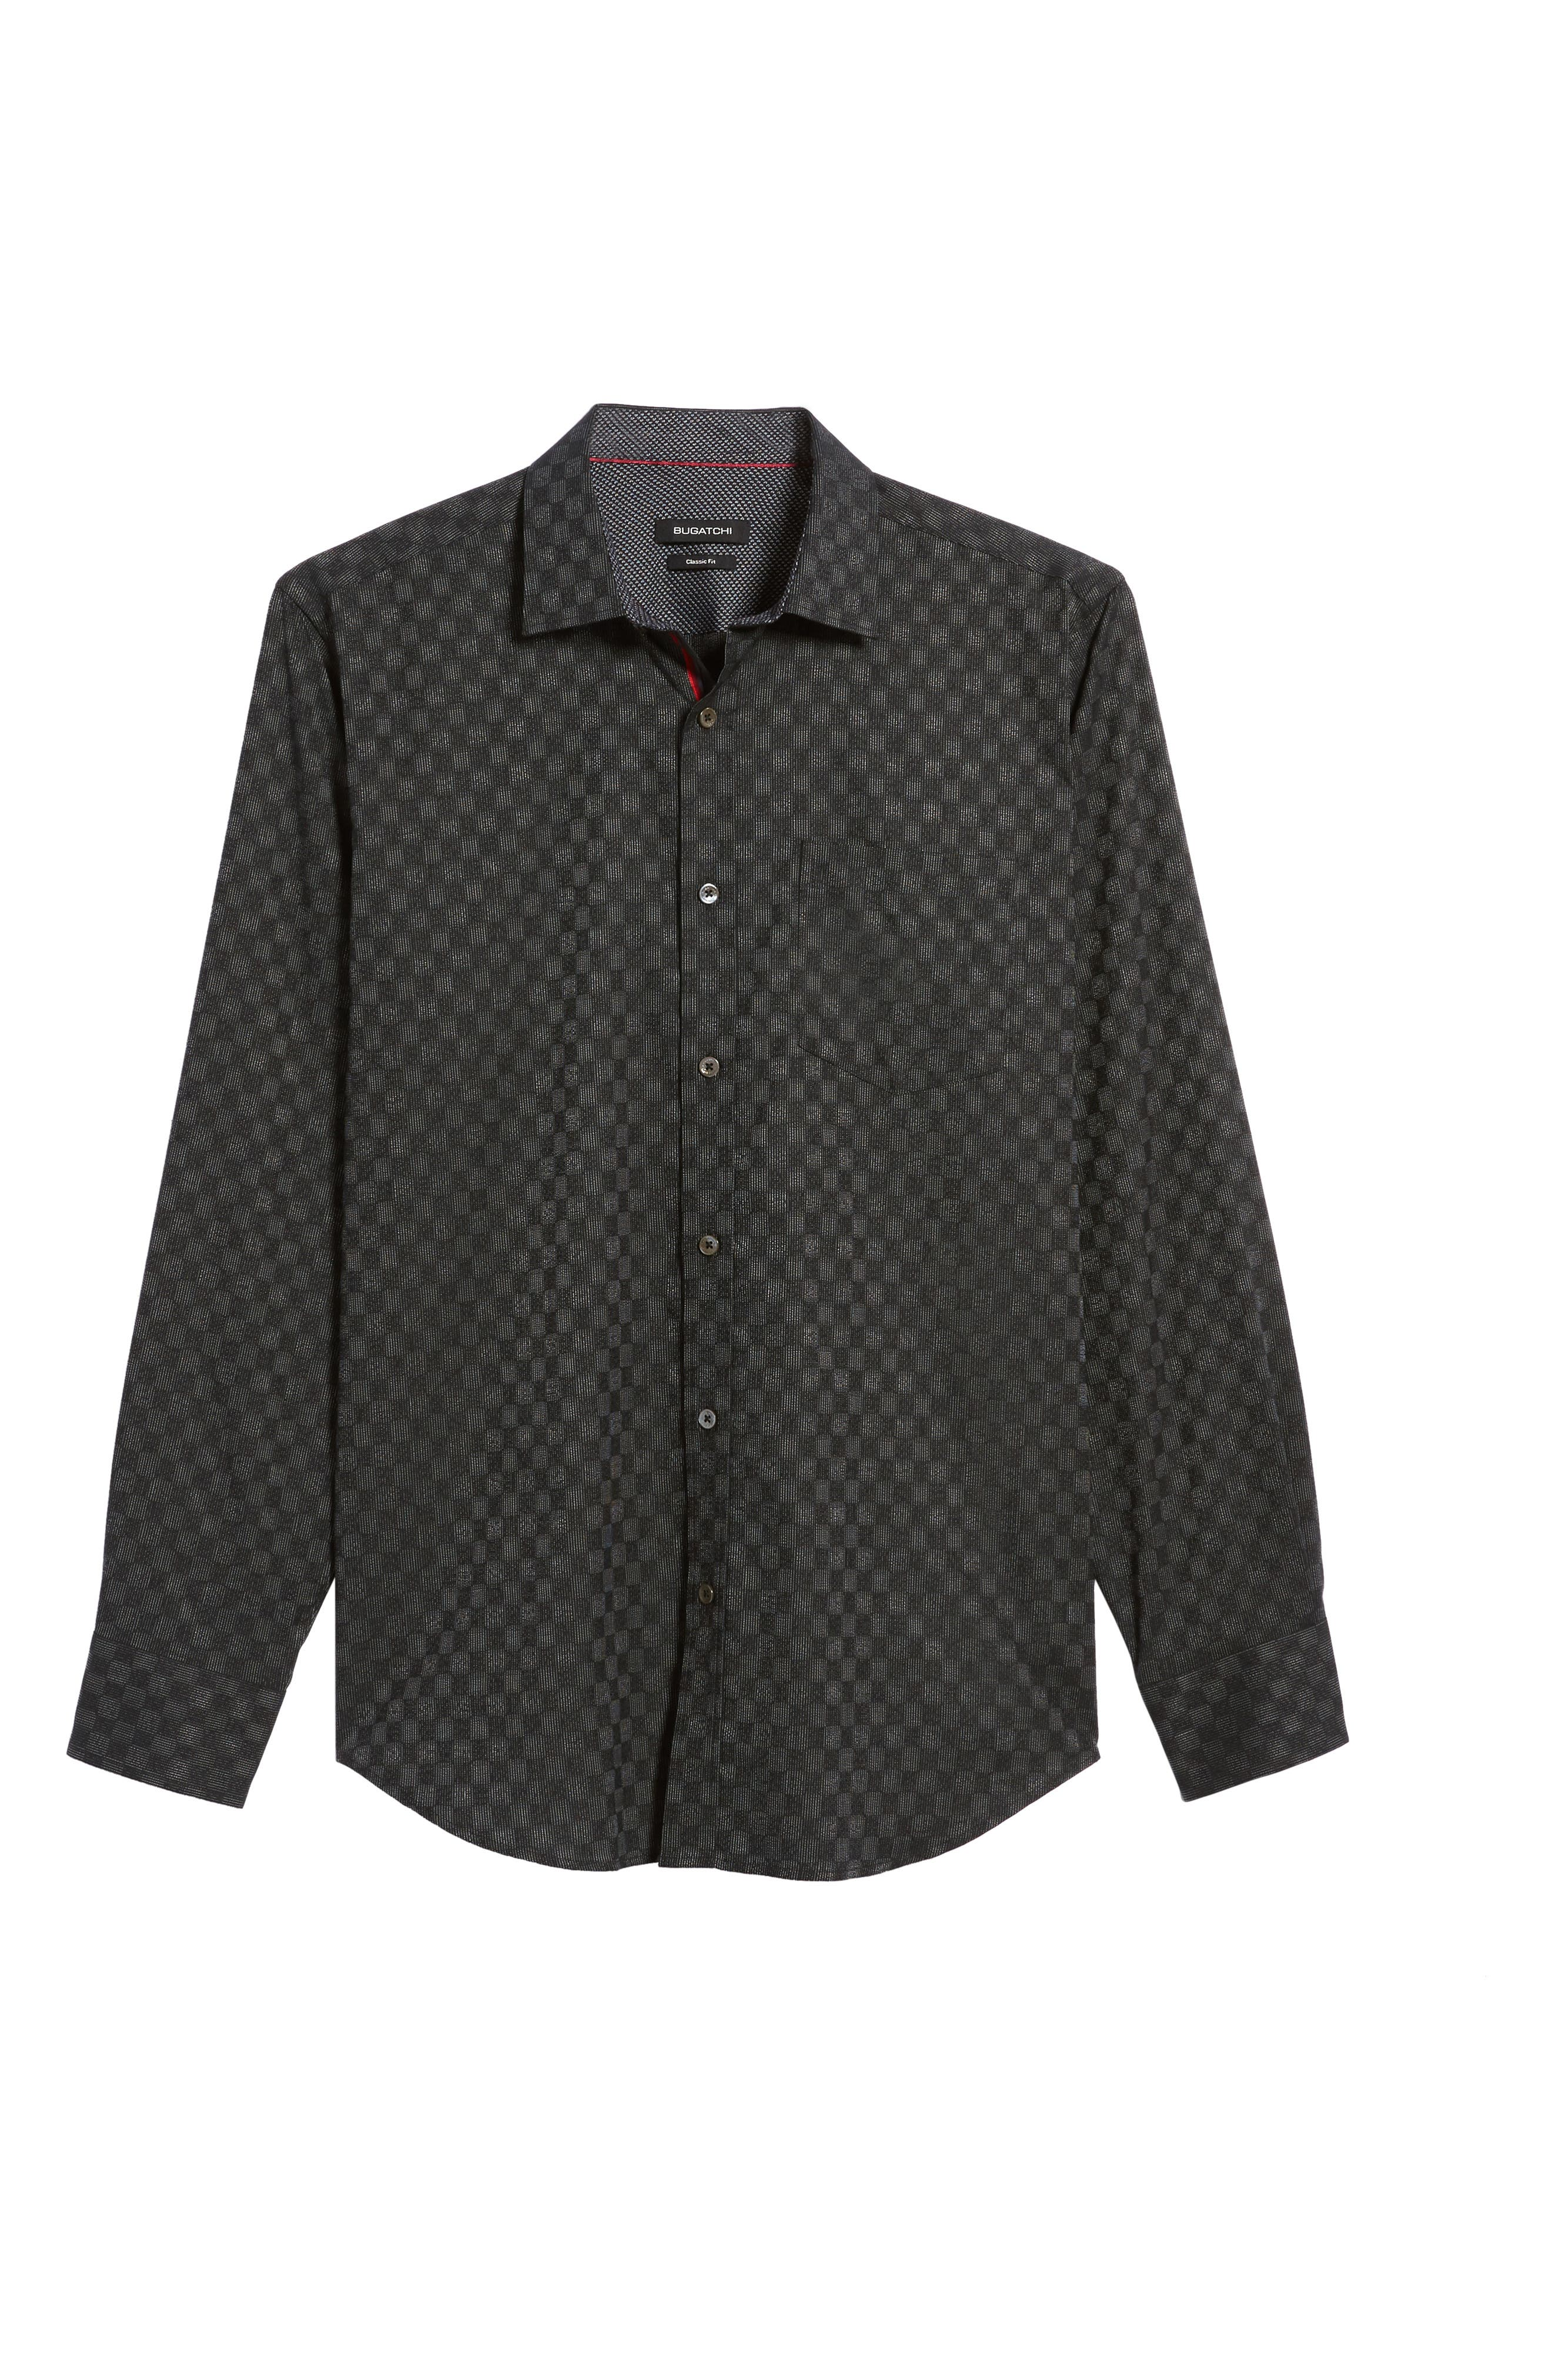 Classic Fit Abstract Dot Print Sport Shirt,                             Alternate thumbnail 6, color,                             001